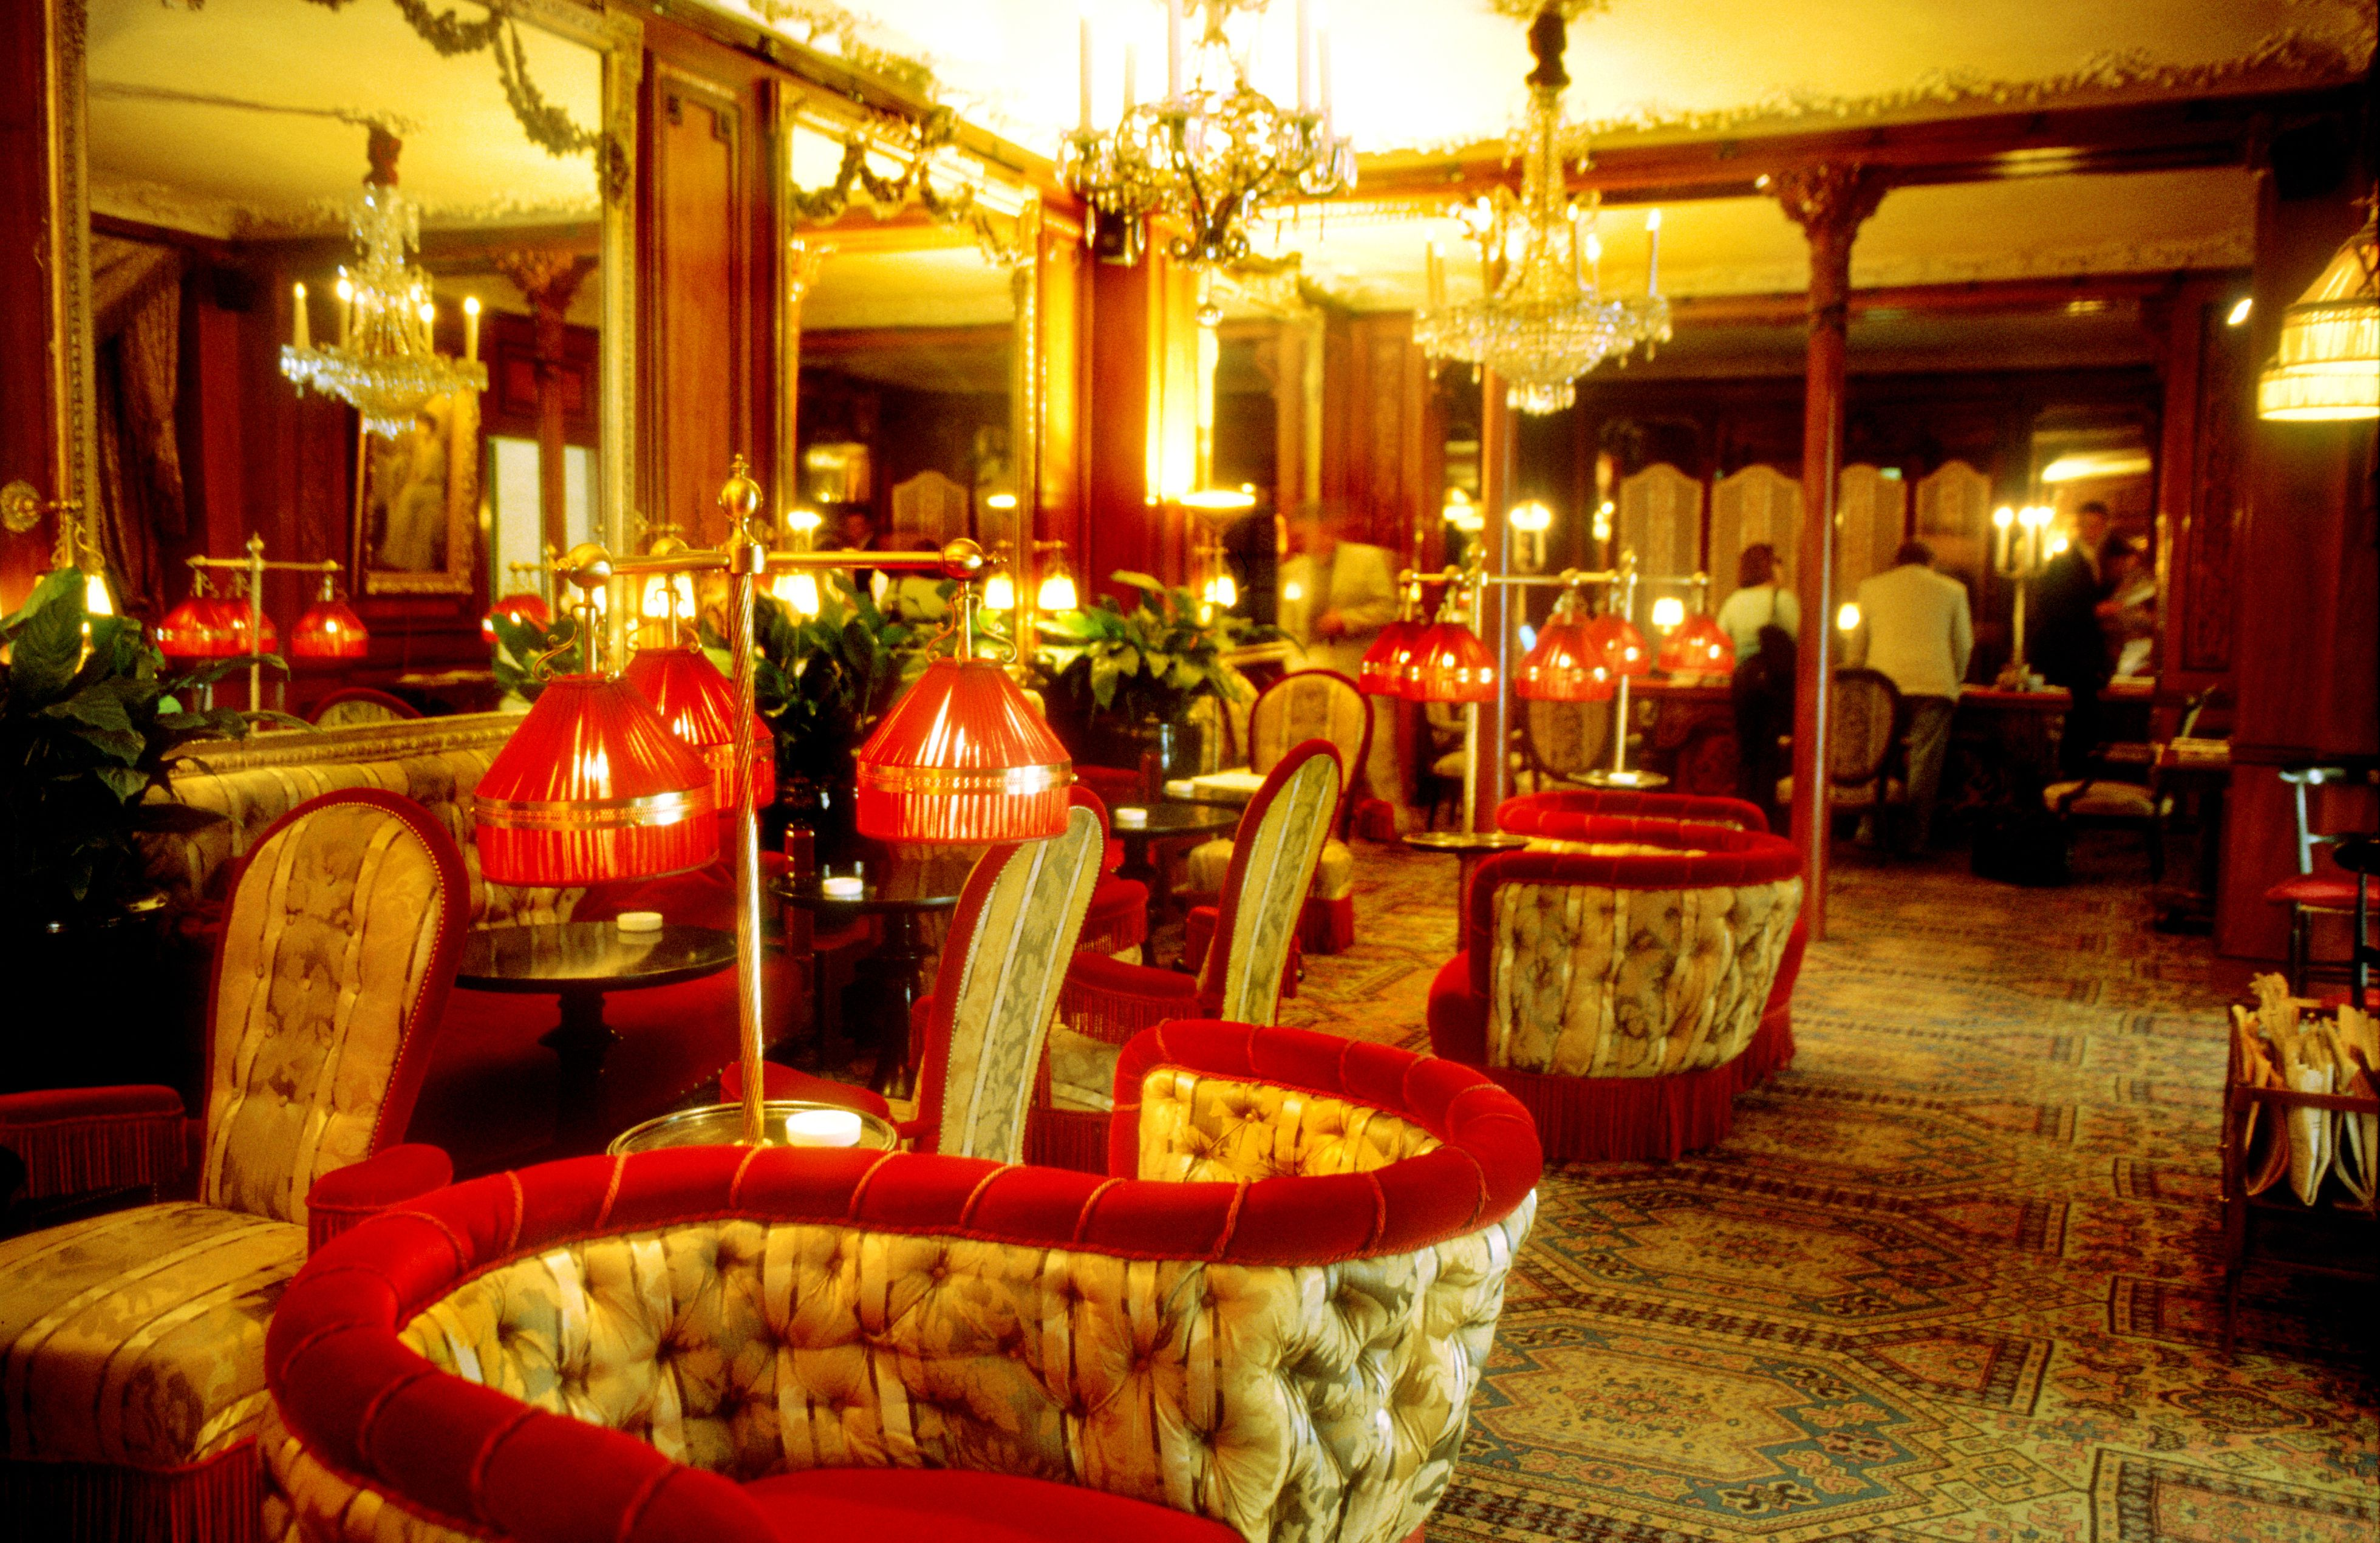 Hotel Costes, 239, Rue Street, Deluxe